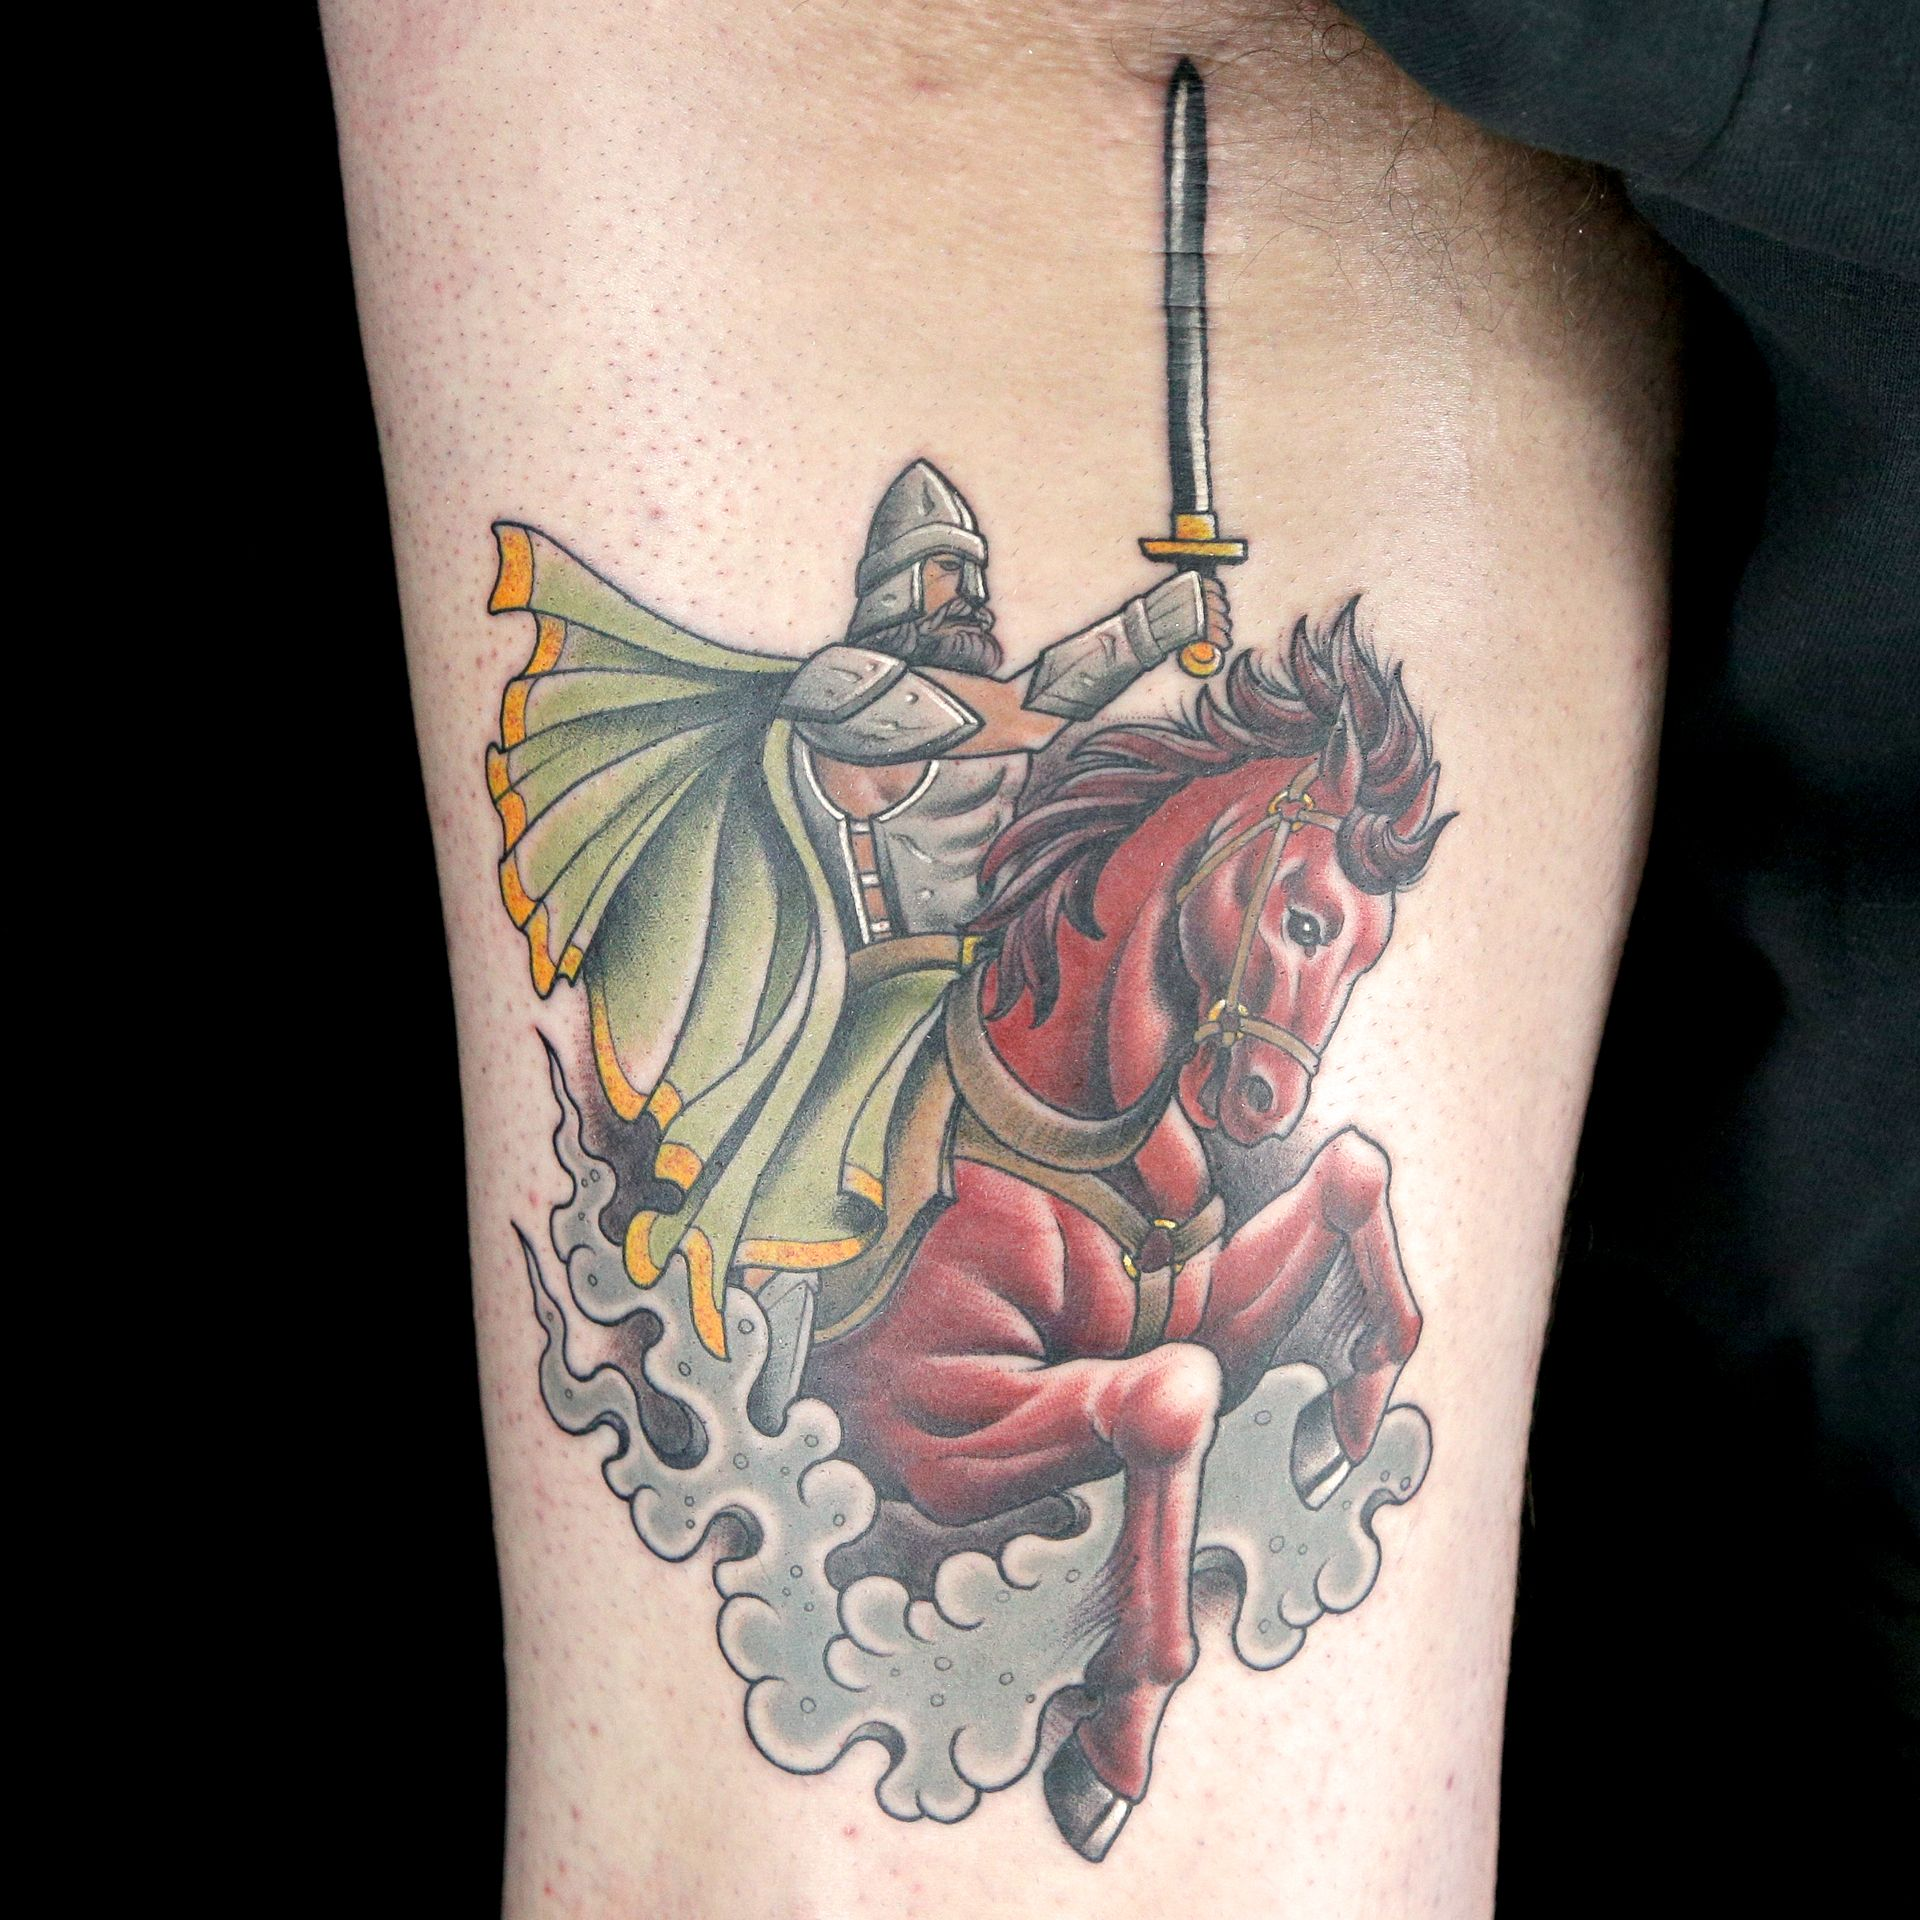 Elimination Tattoo 4 On 1 Four Horsemen Of The Apocalypse Ideas And Designs